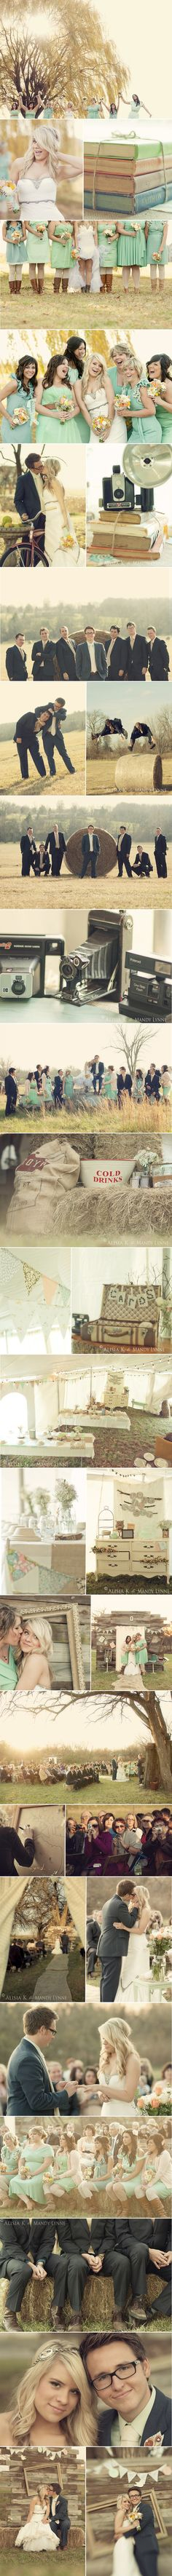 mint + country #wedding